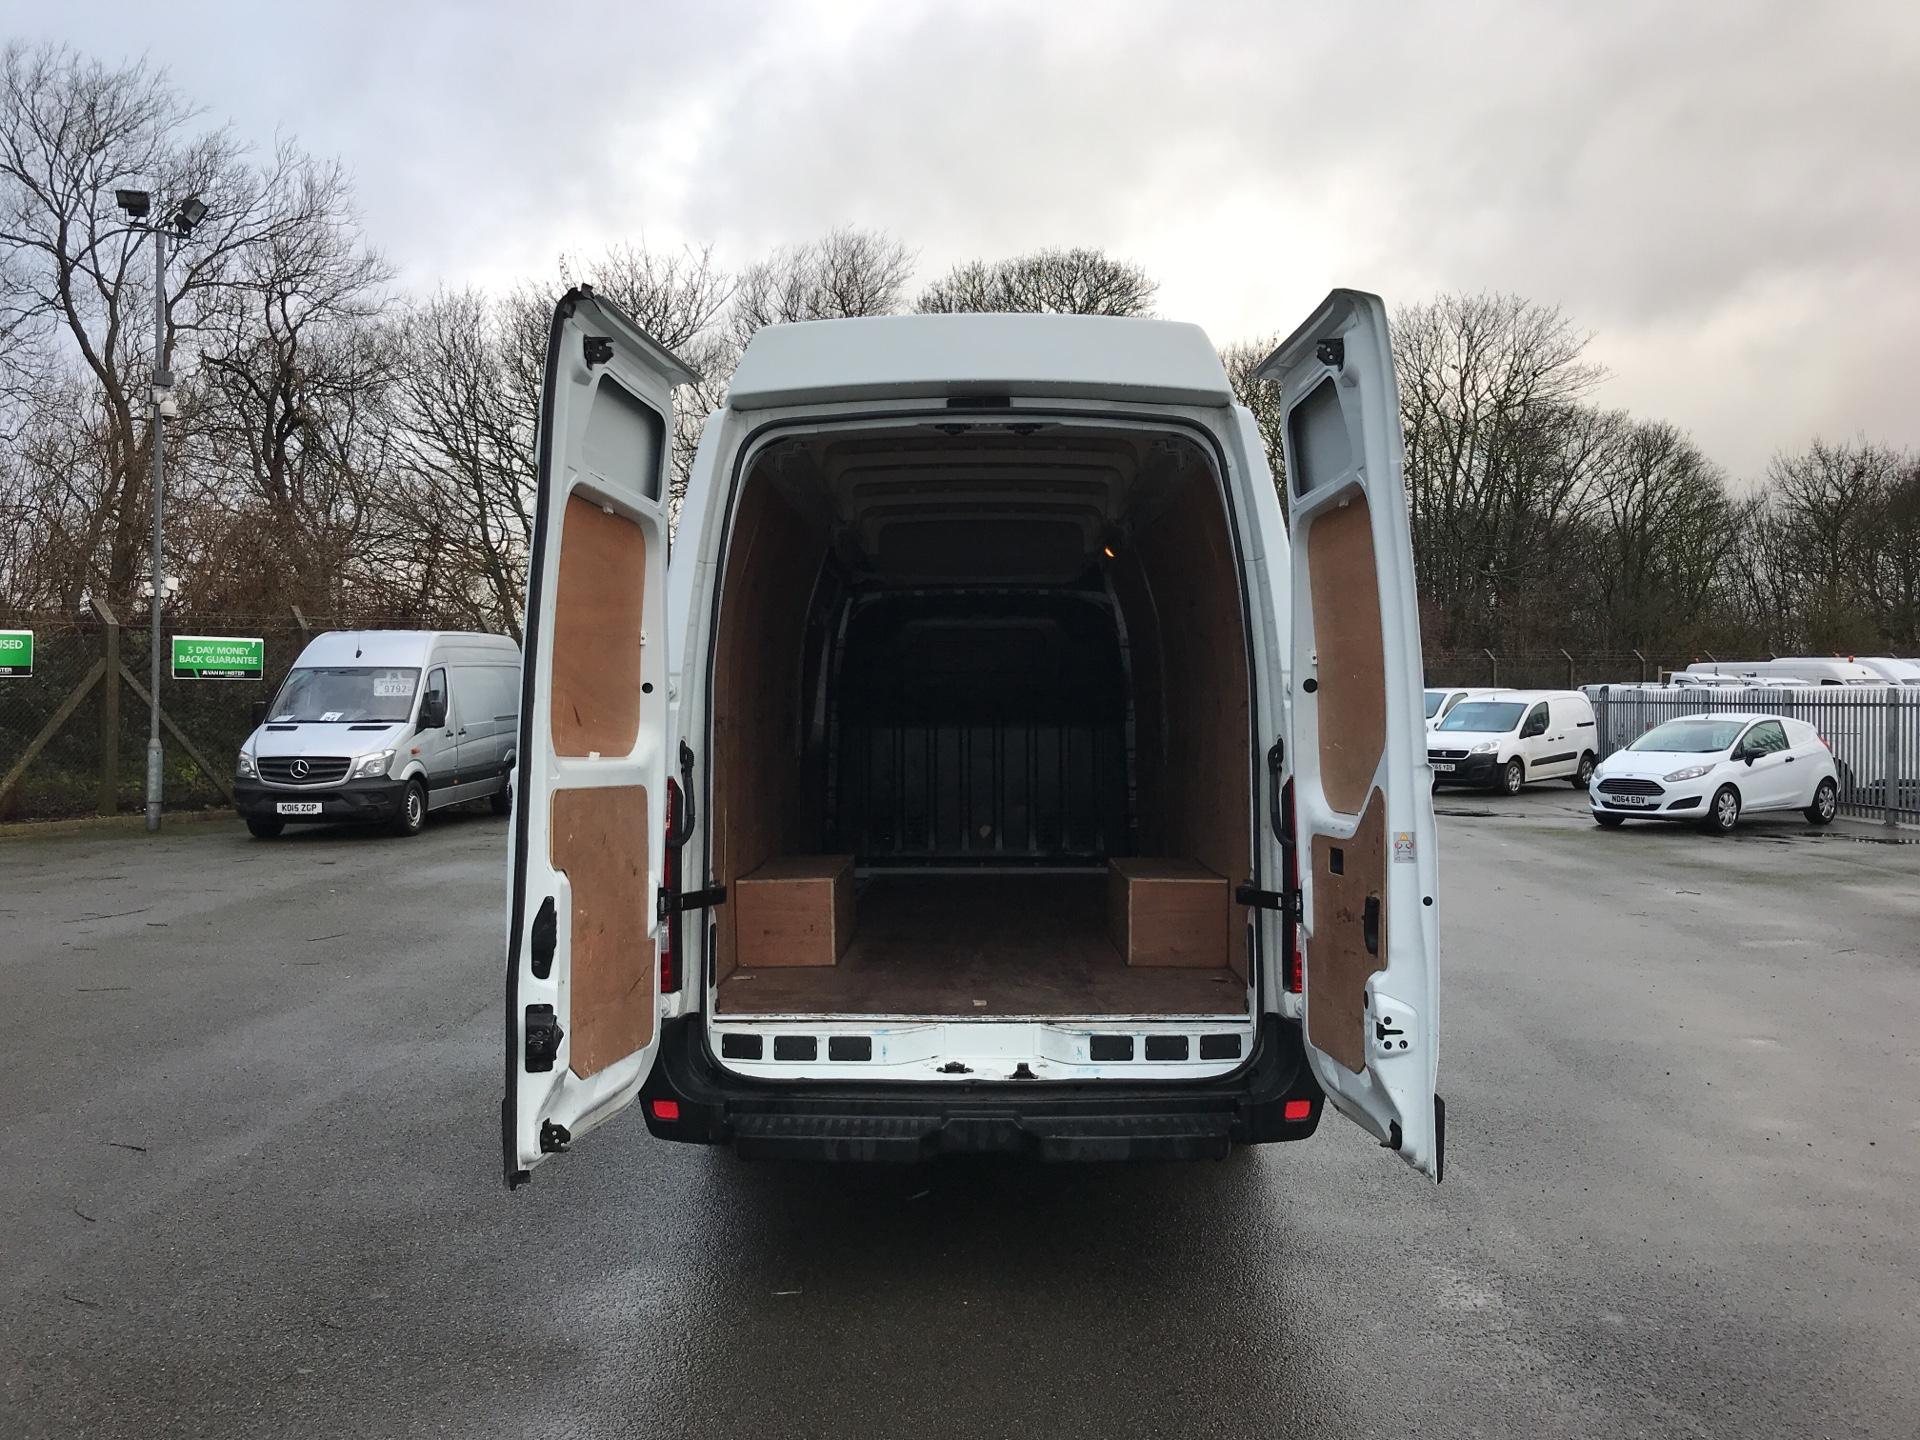 2015 Vauxhall Movano 35 L3 H3 125PS EURO 5 *VALUE RANGE VEHICLE - CONDITION REFLECTED IN PRICE* (DL65CVK) Image 15